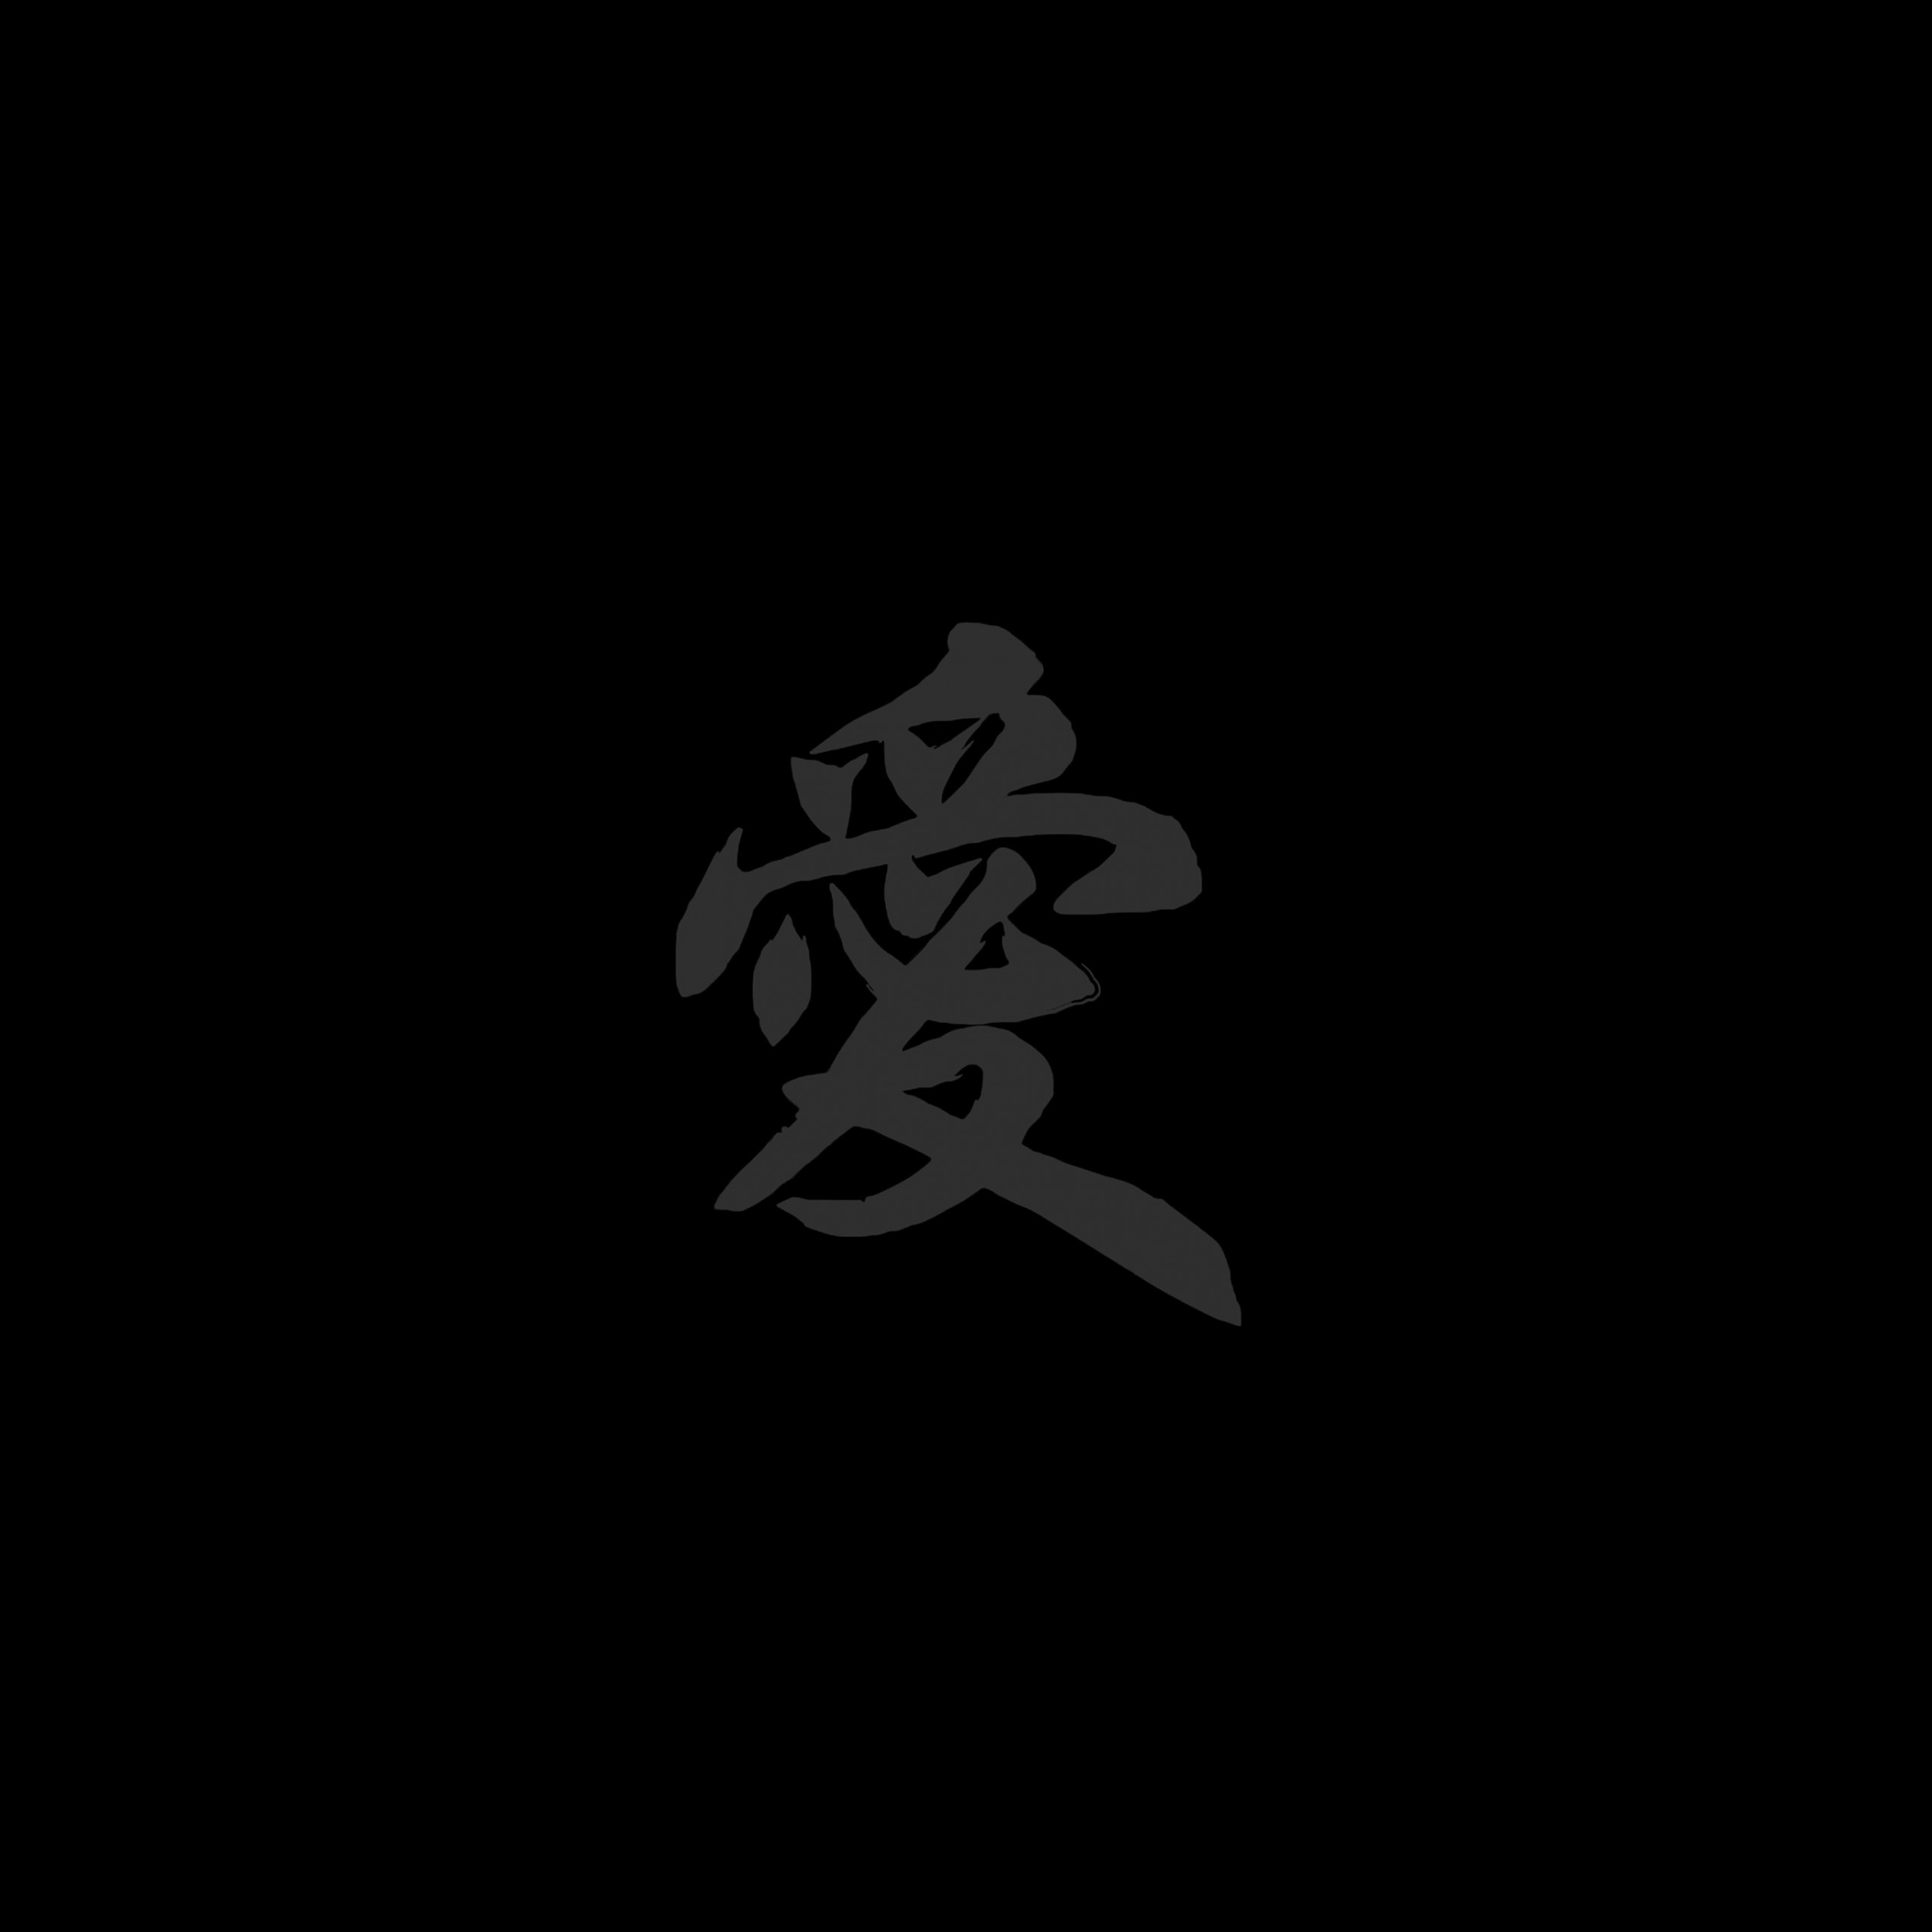 papers ap91 love chinese letter minimal dark bw 40 wallpaper